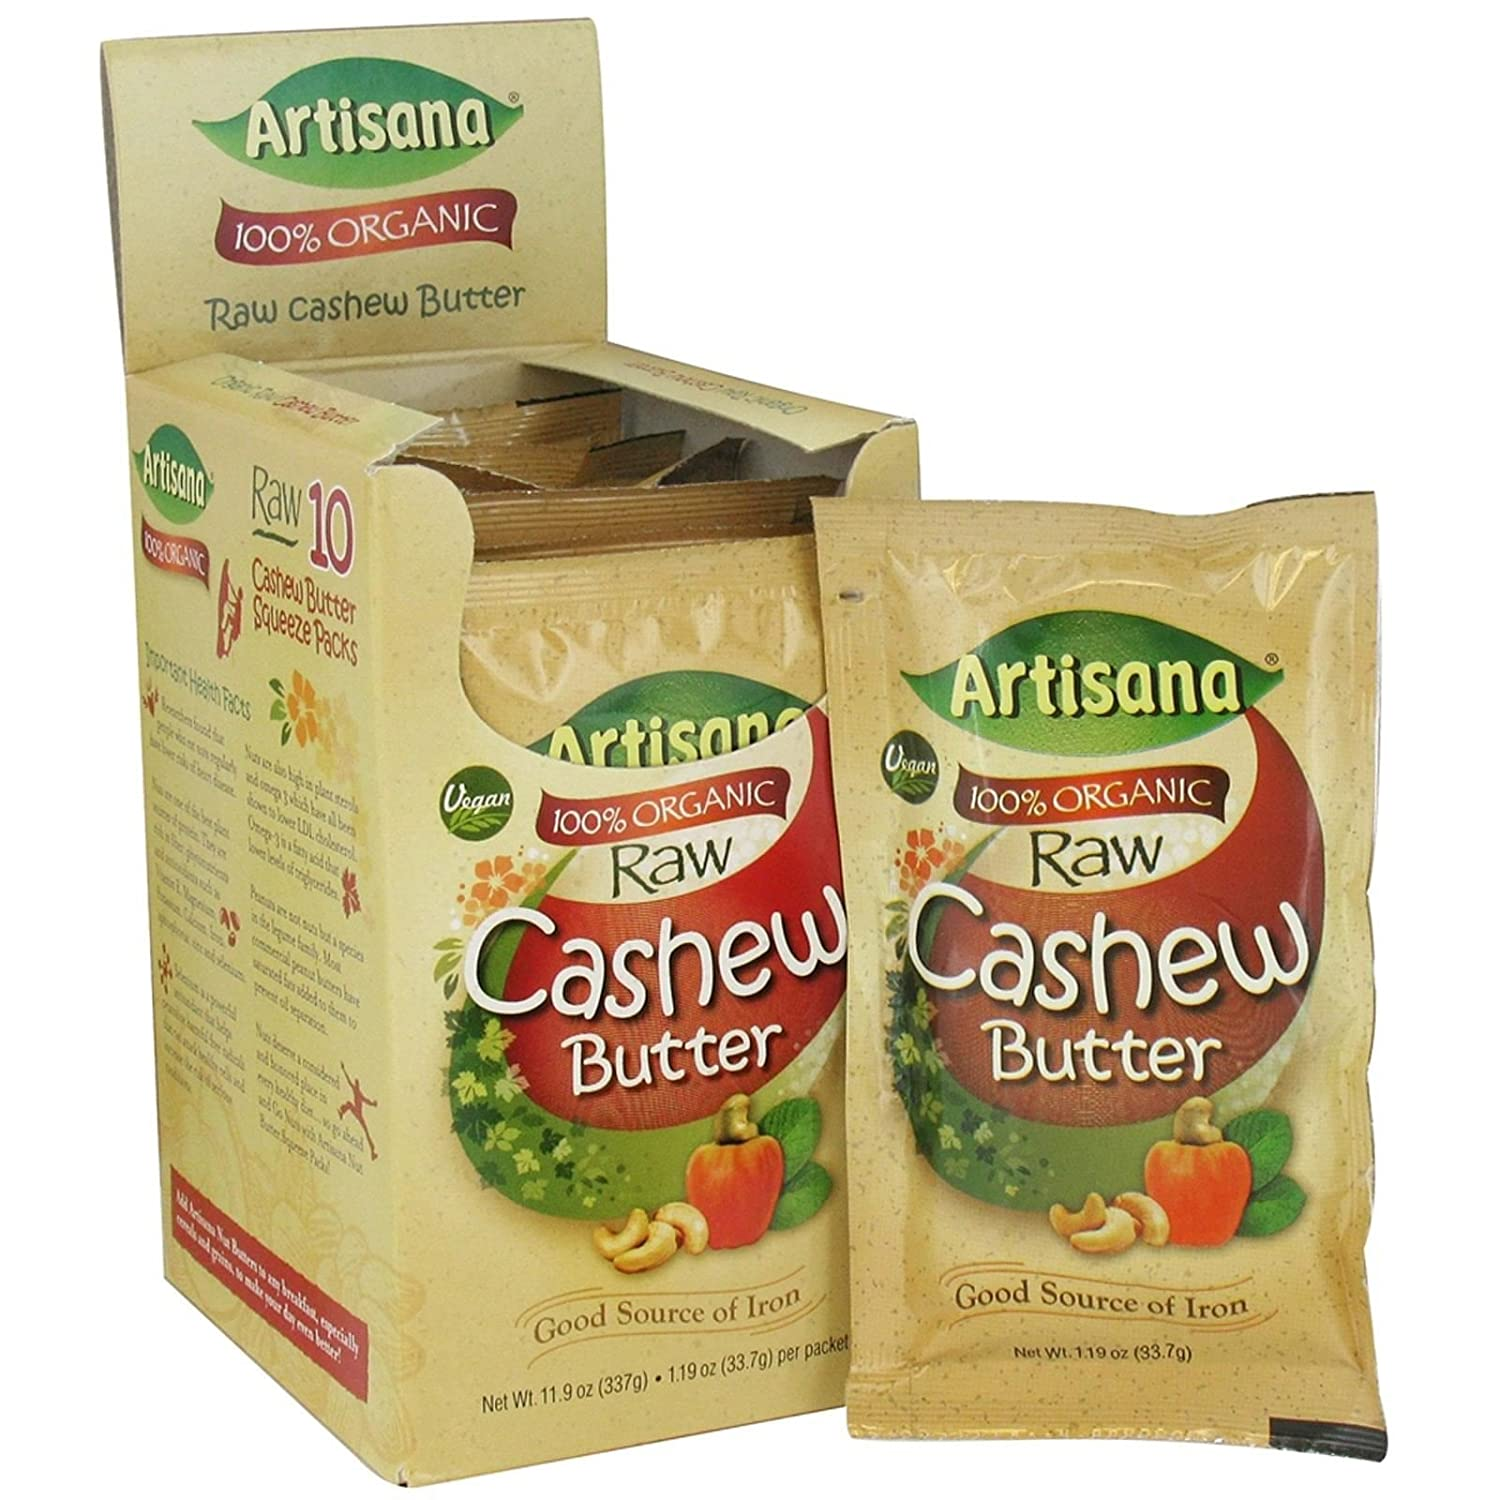 fast metabolism diet, Artisana Raw Organic Cashew Butter - 10.6 oz box (travel packs) by Artisana